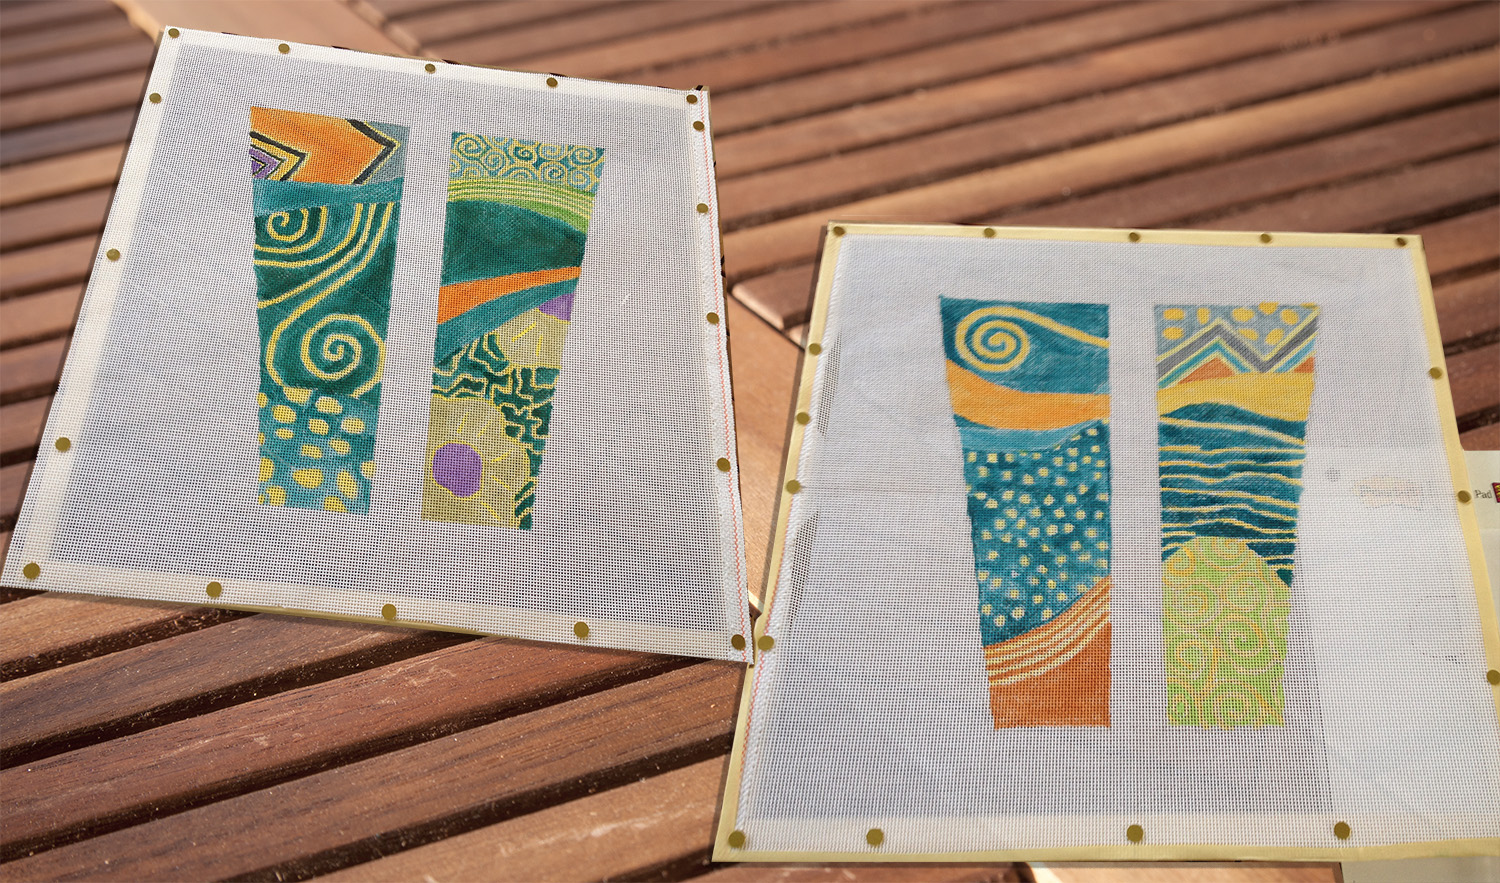 Painted canvases, ready to be stitched.